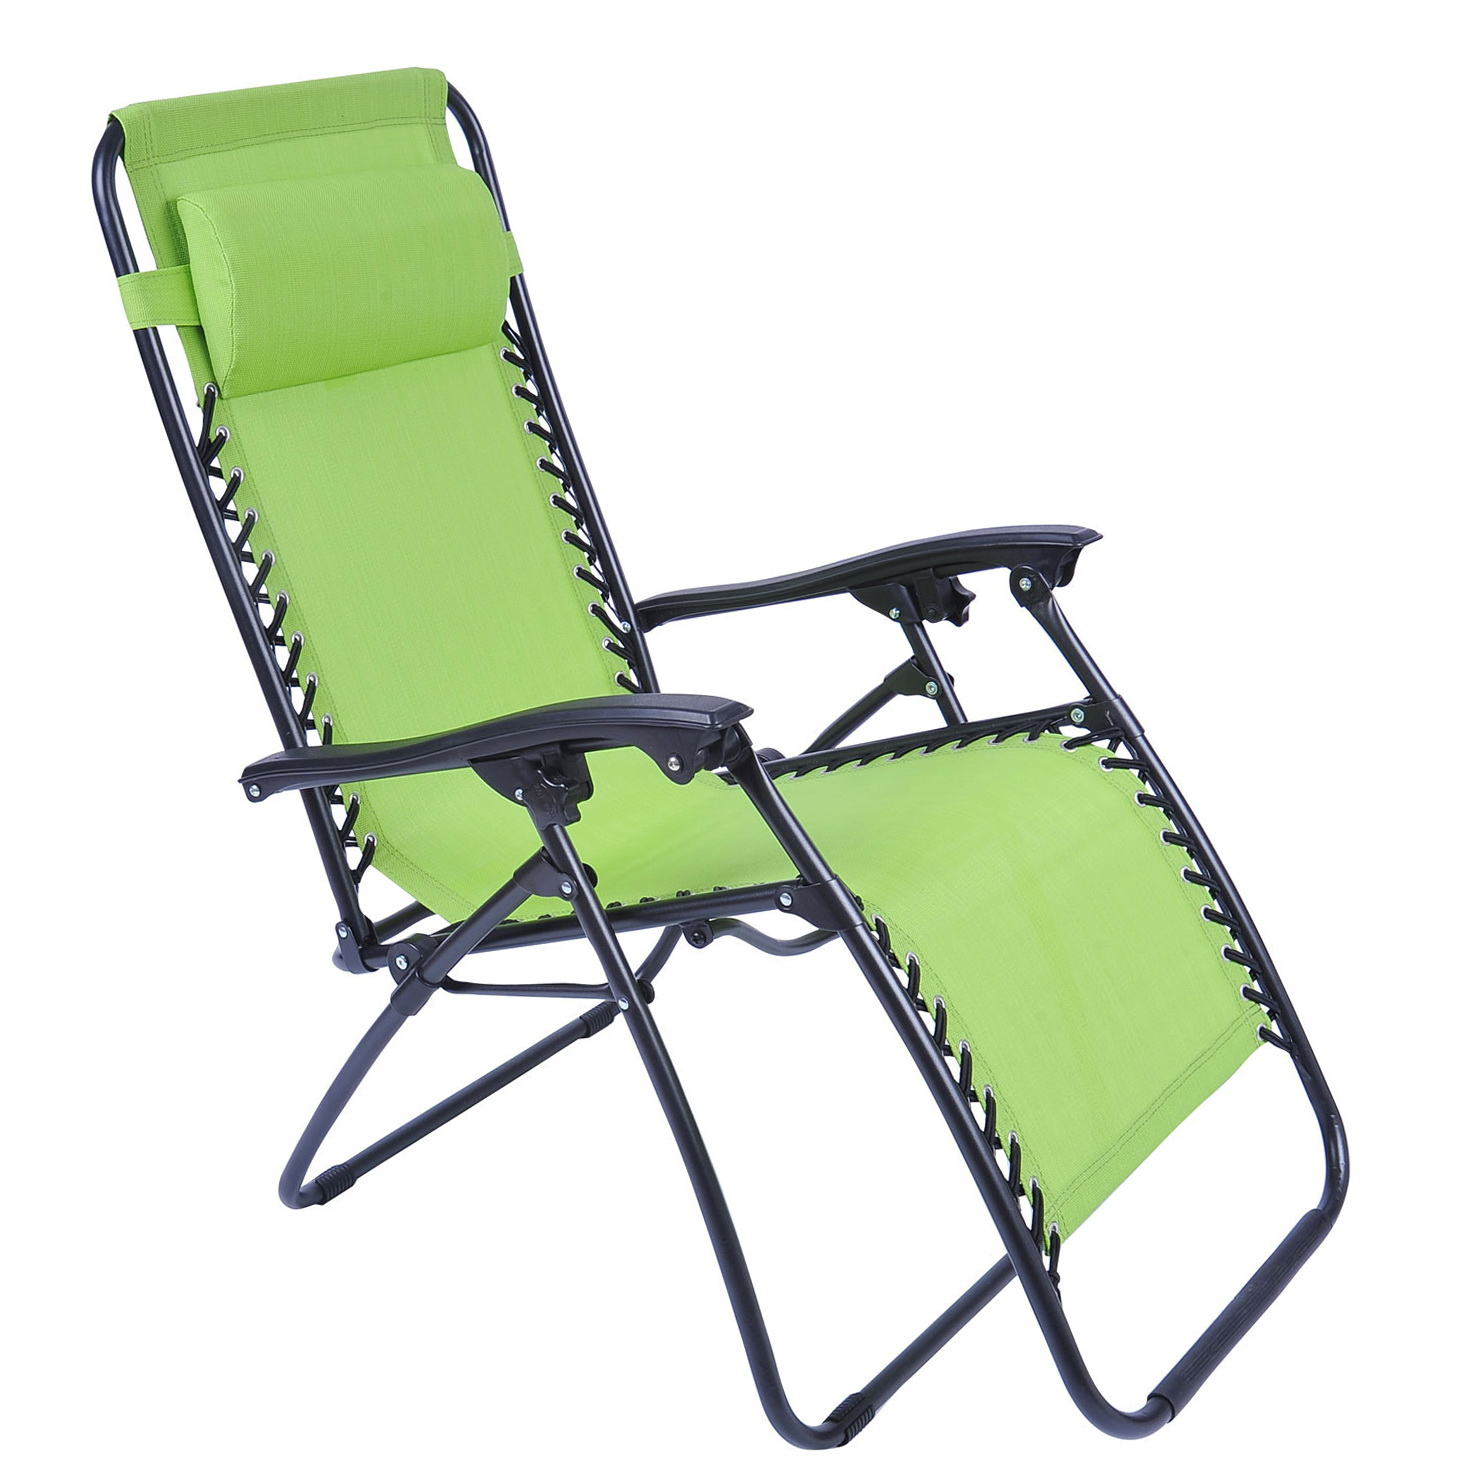 chaise lounge chair folding chaise lounge chair patio outdoor pool lawn 28557